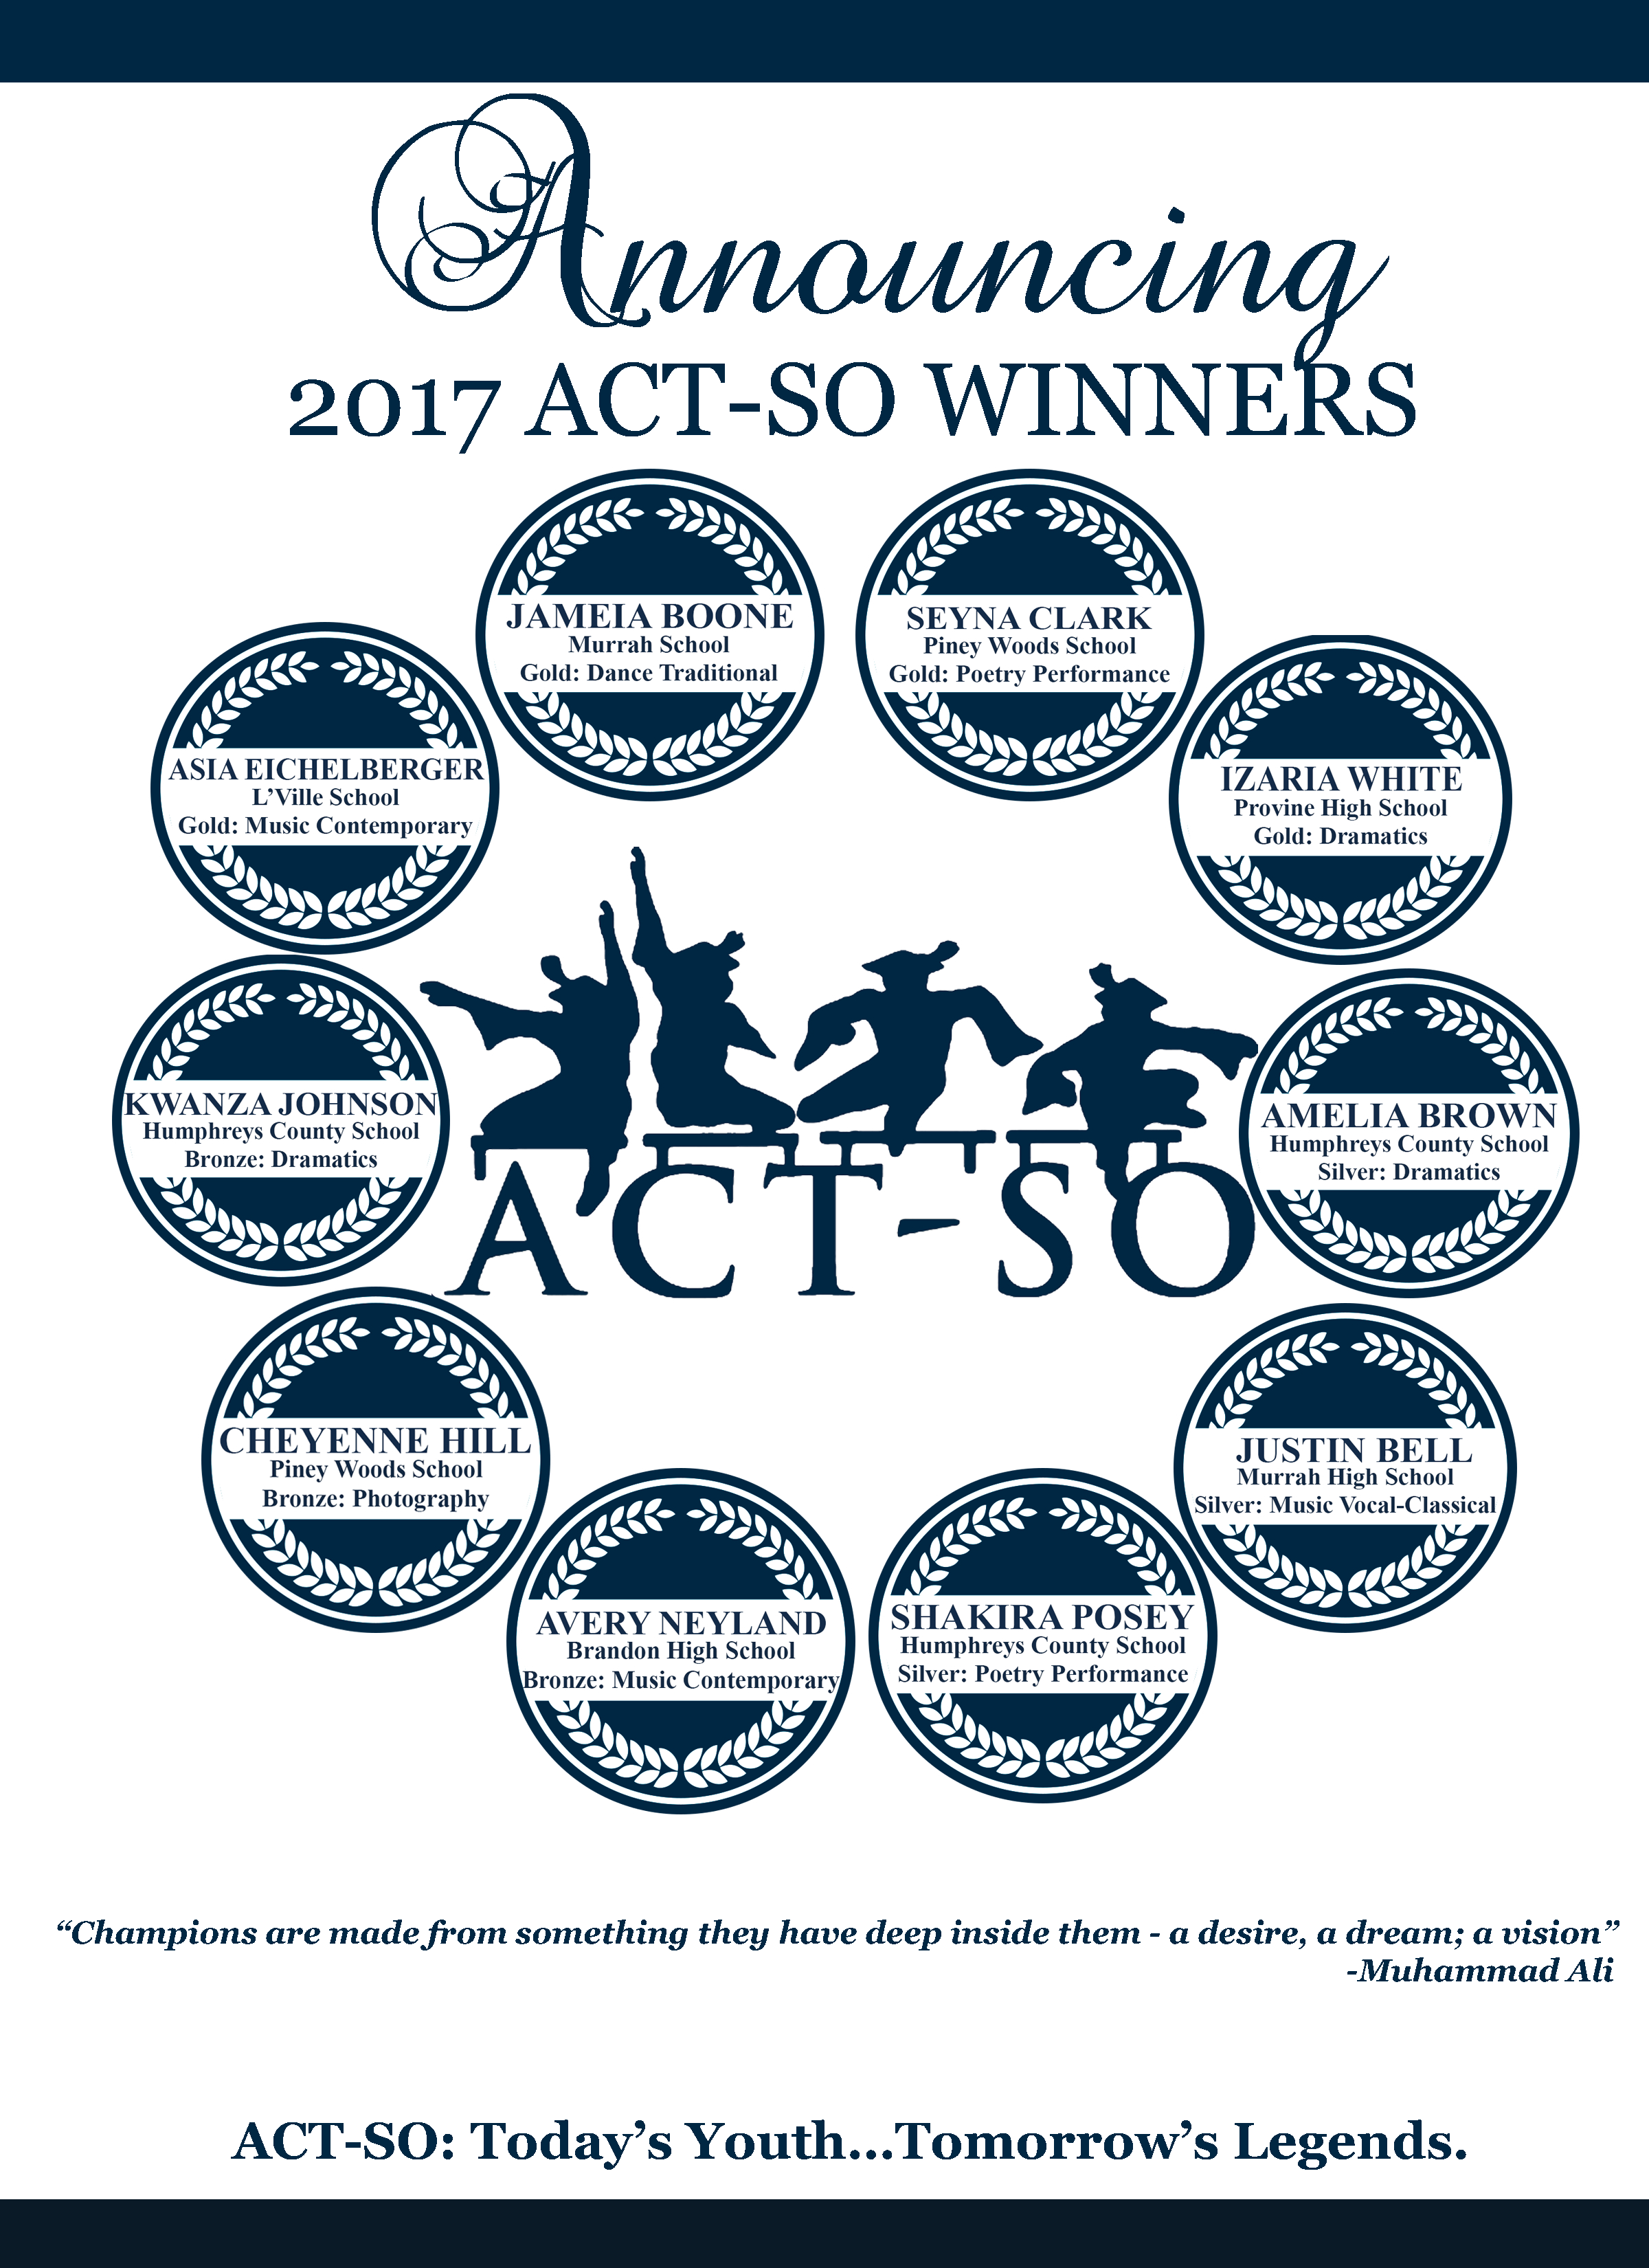 ACT-SO FLYER 2017